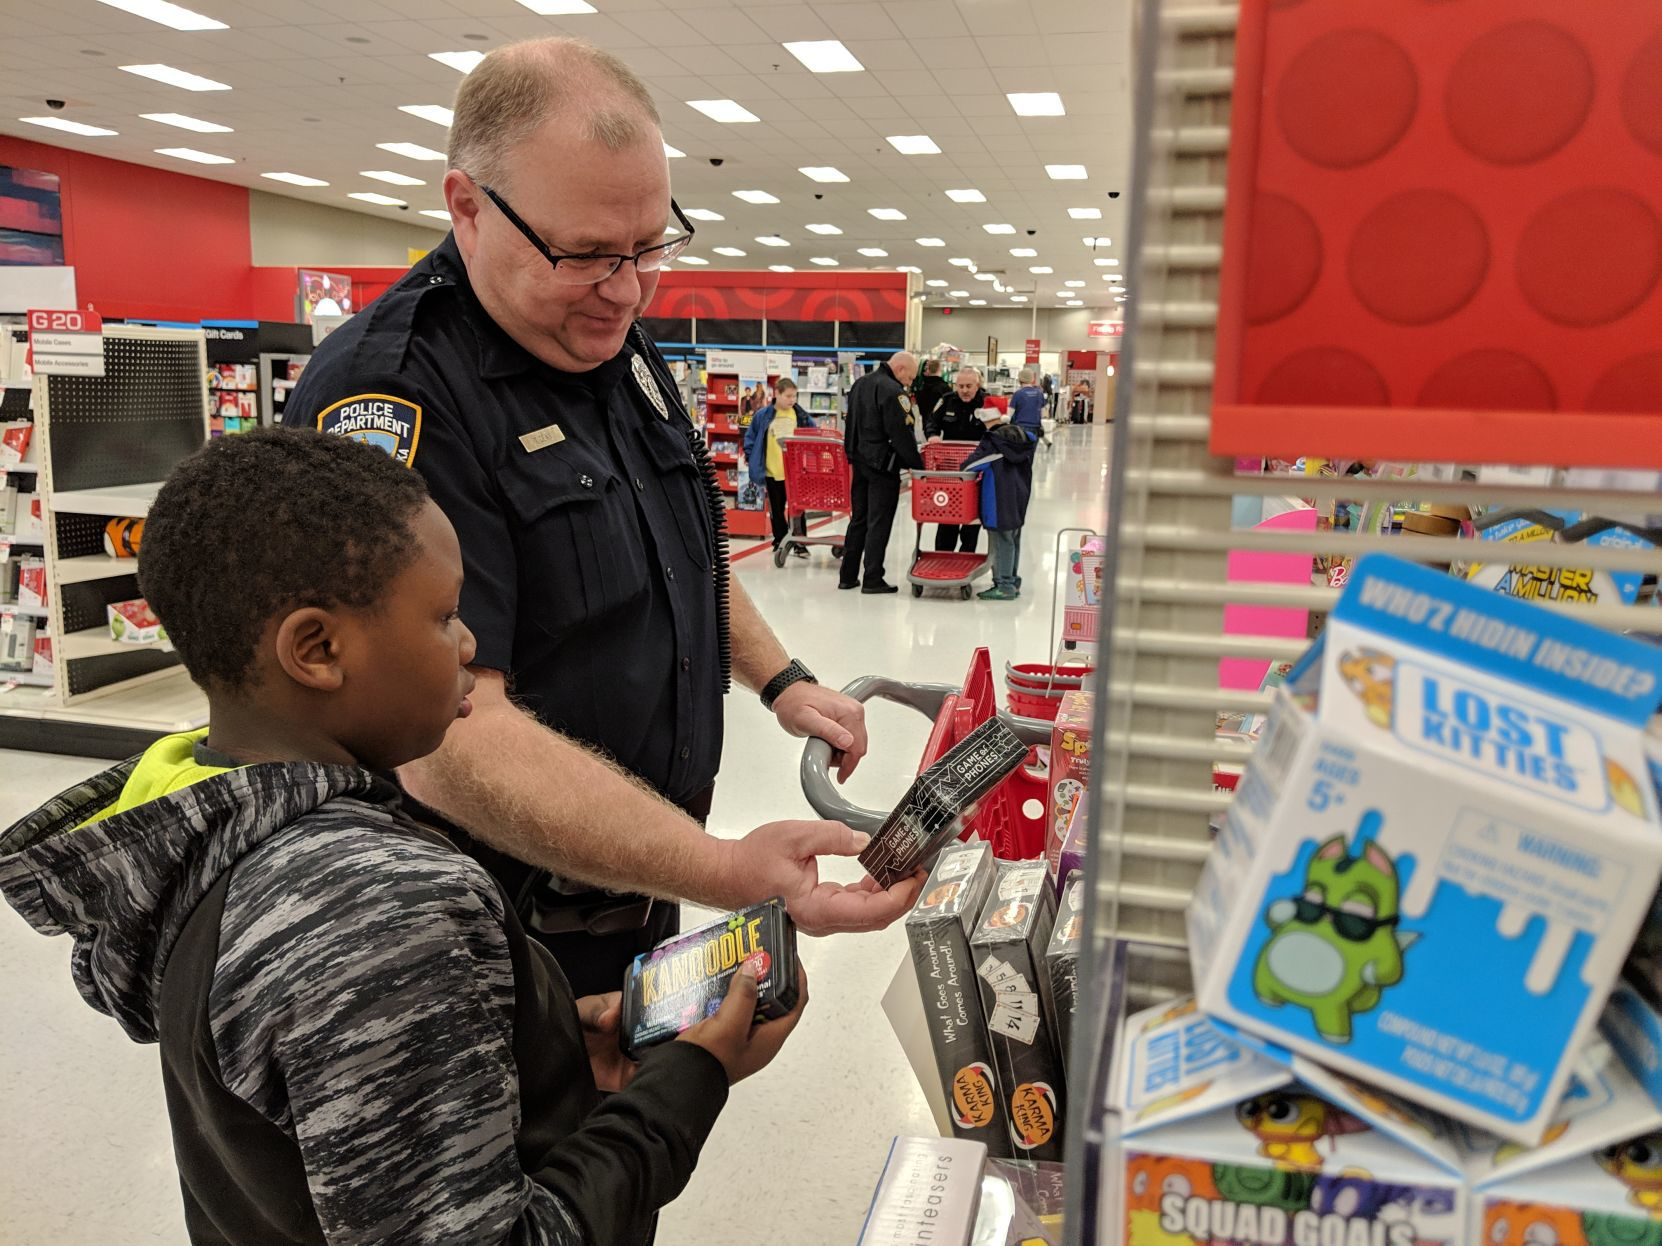 'Shop with a Cop' gives kids chance to spend time with Lincoln police officers | Journal Star